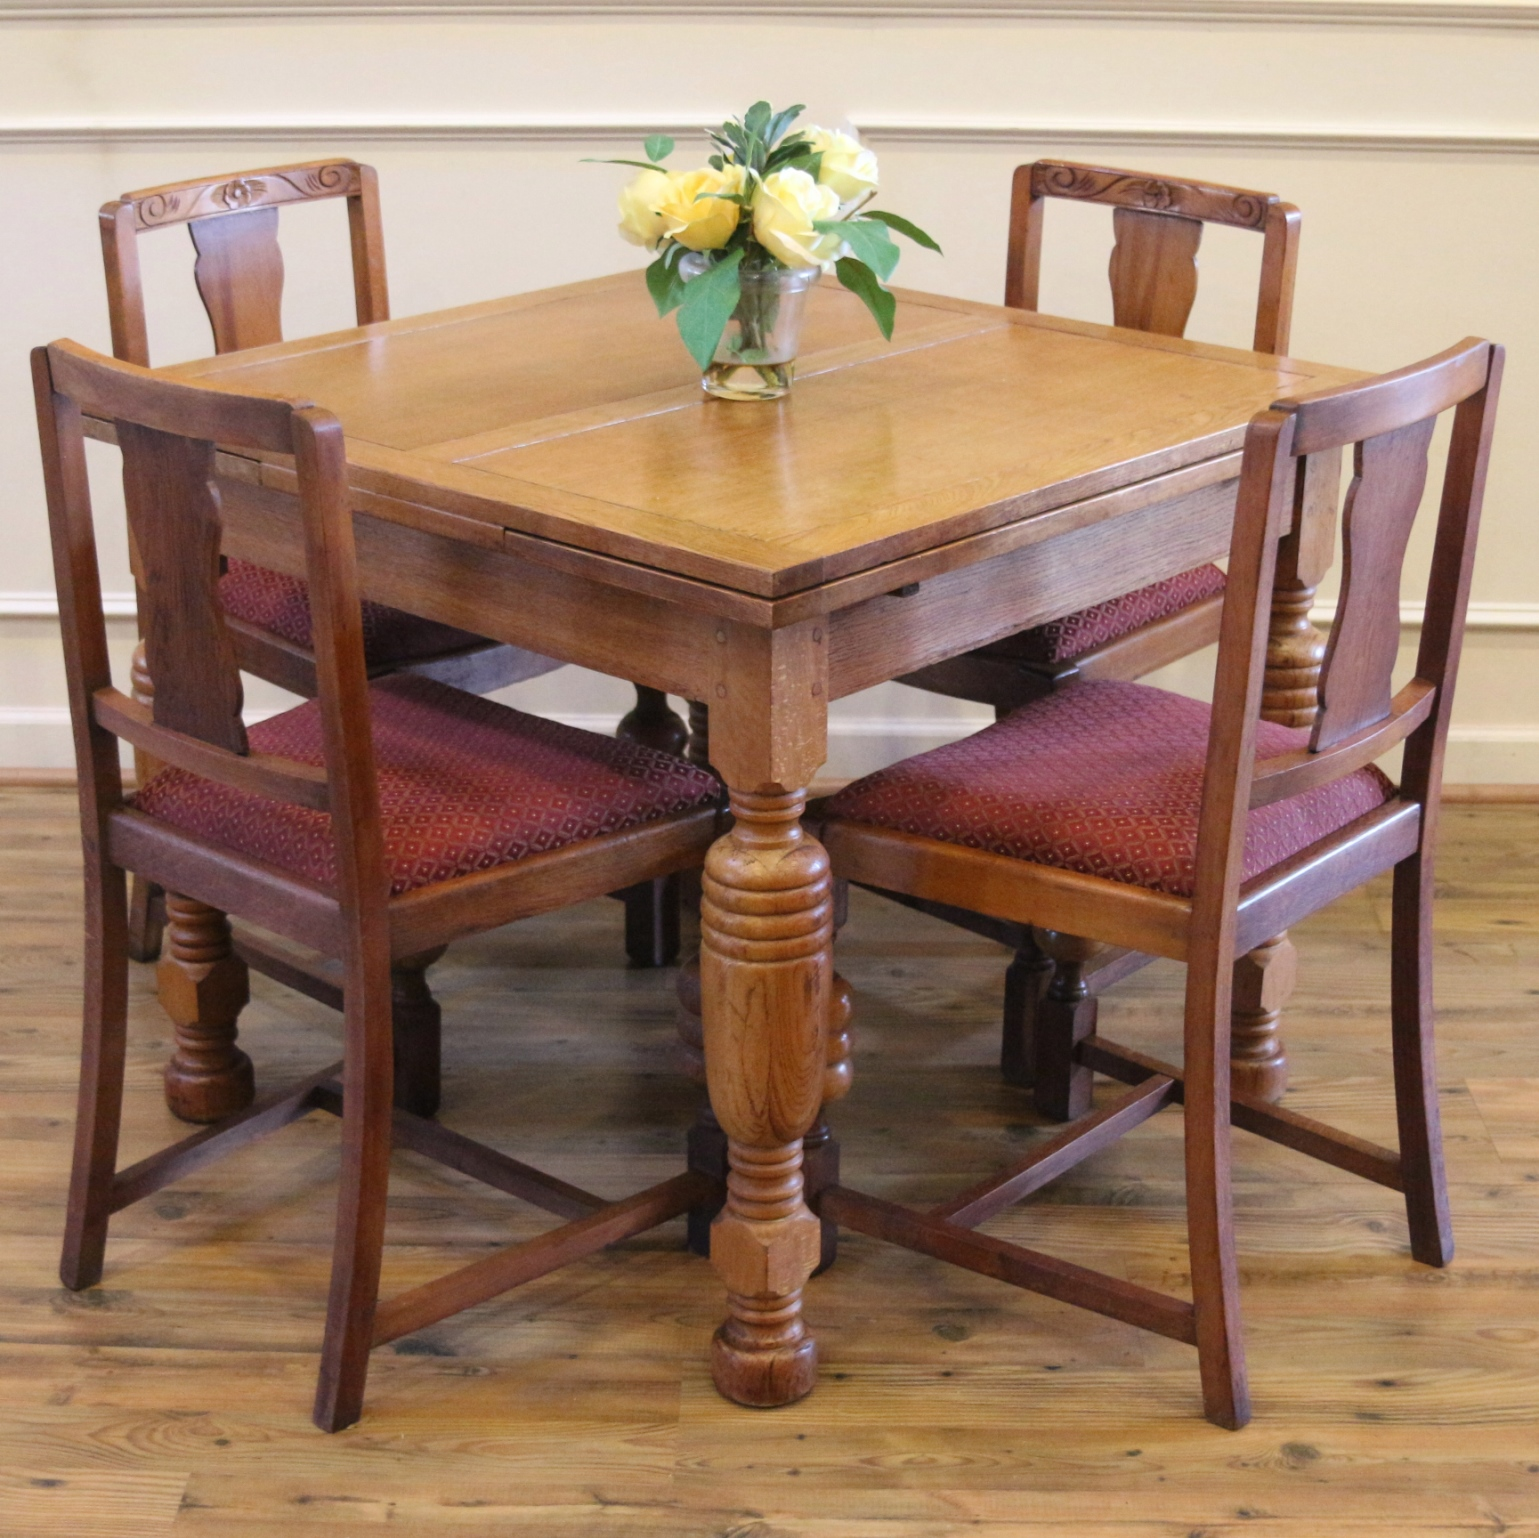 Chairs For Table Antique English Oak Pub Table And 4 Chairs Dining Set For